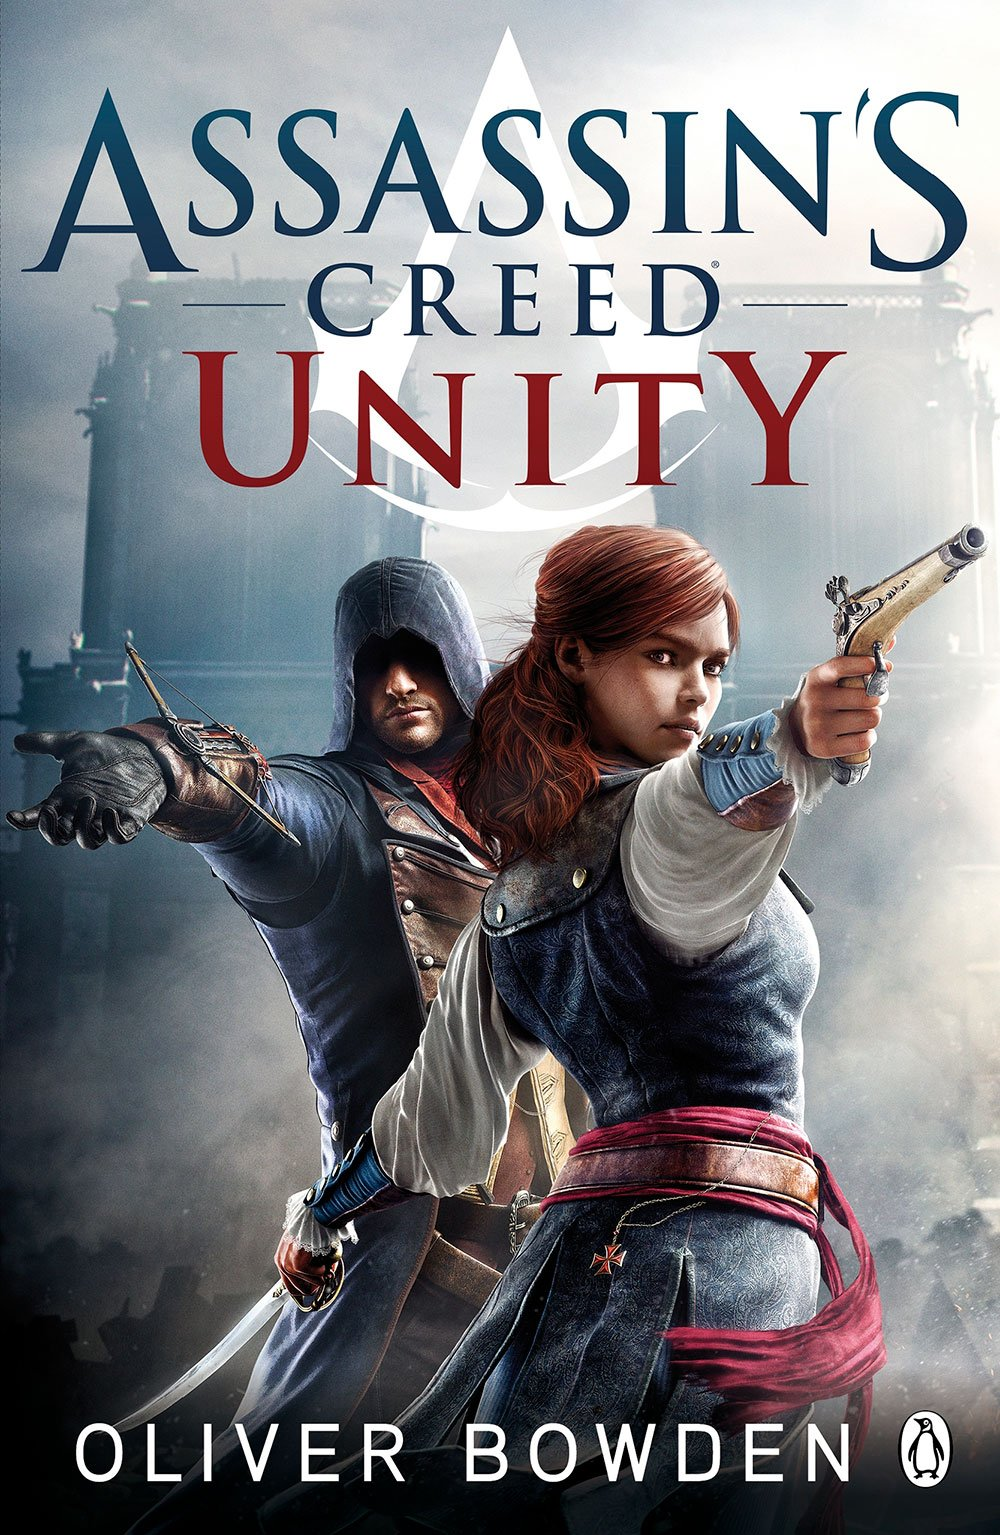 Assassins Creed Unity Novel Assassins Creed Wiki Fandom